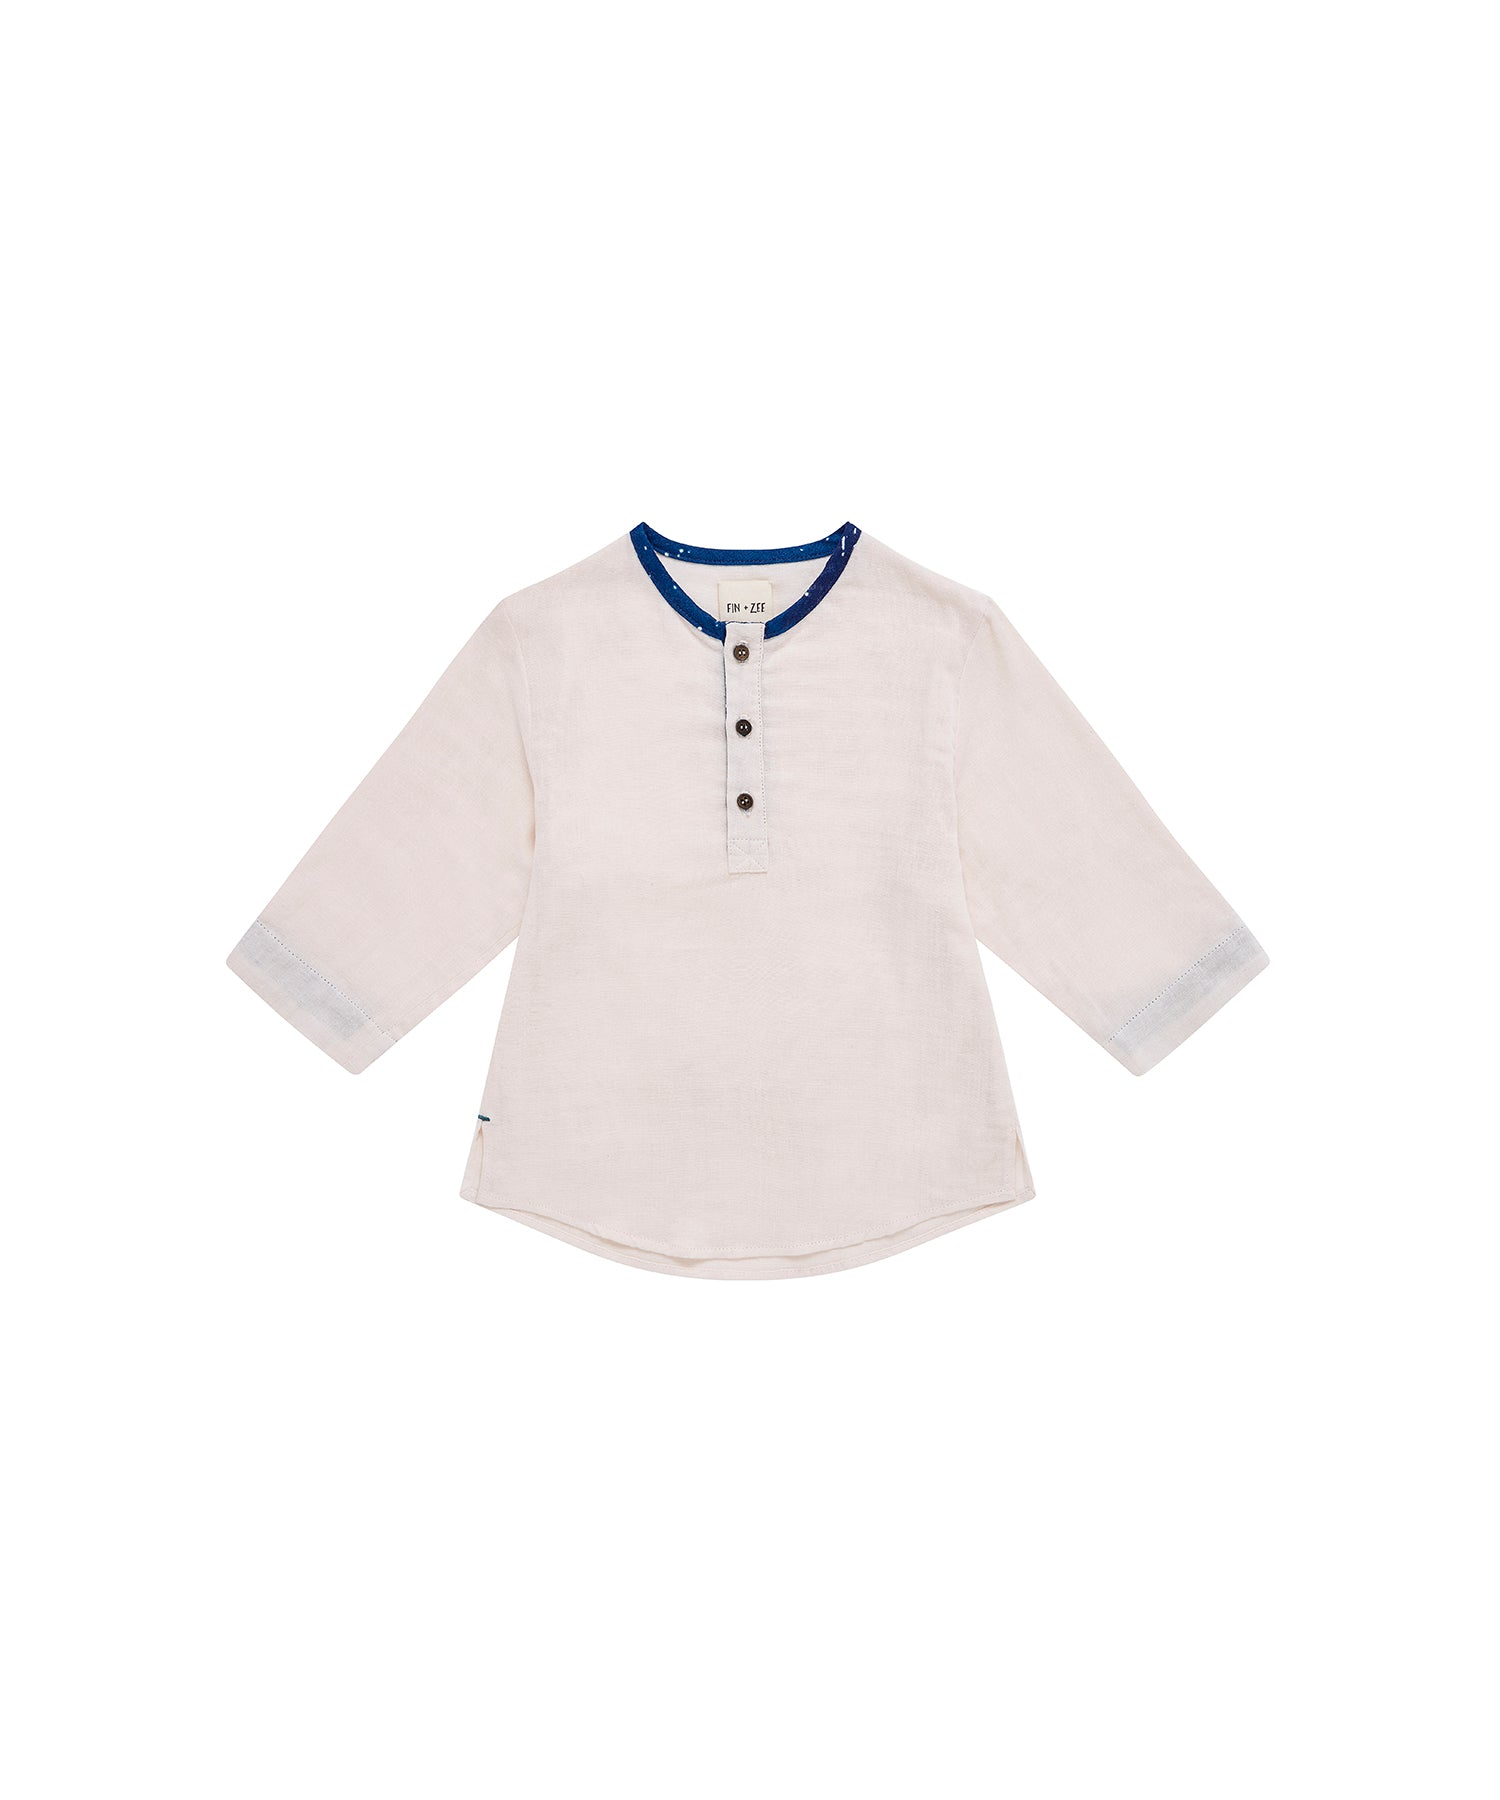 baby boy cream shirt